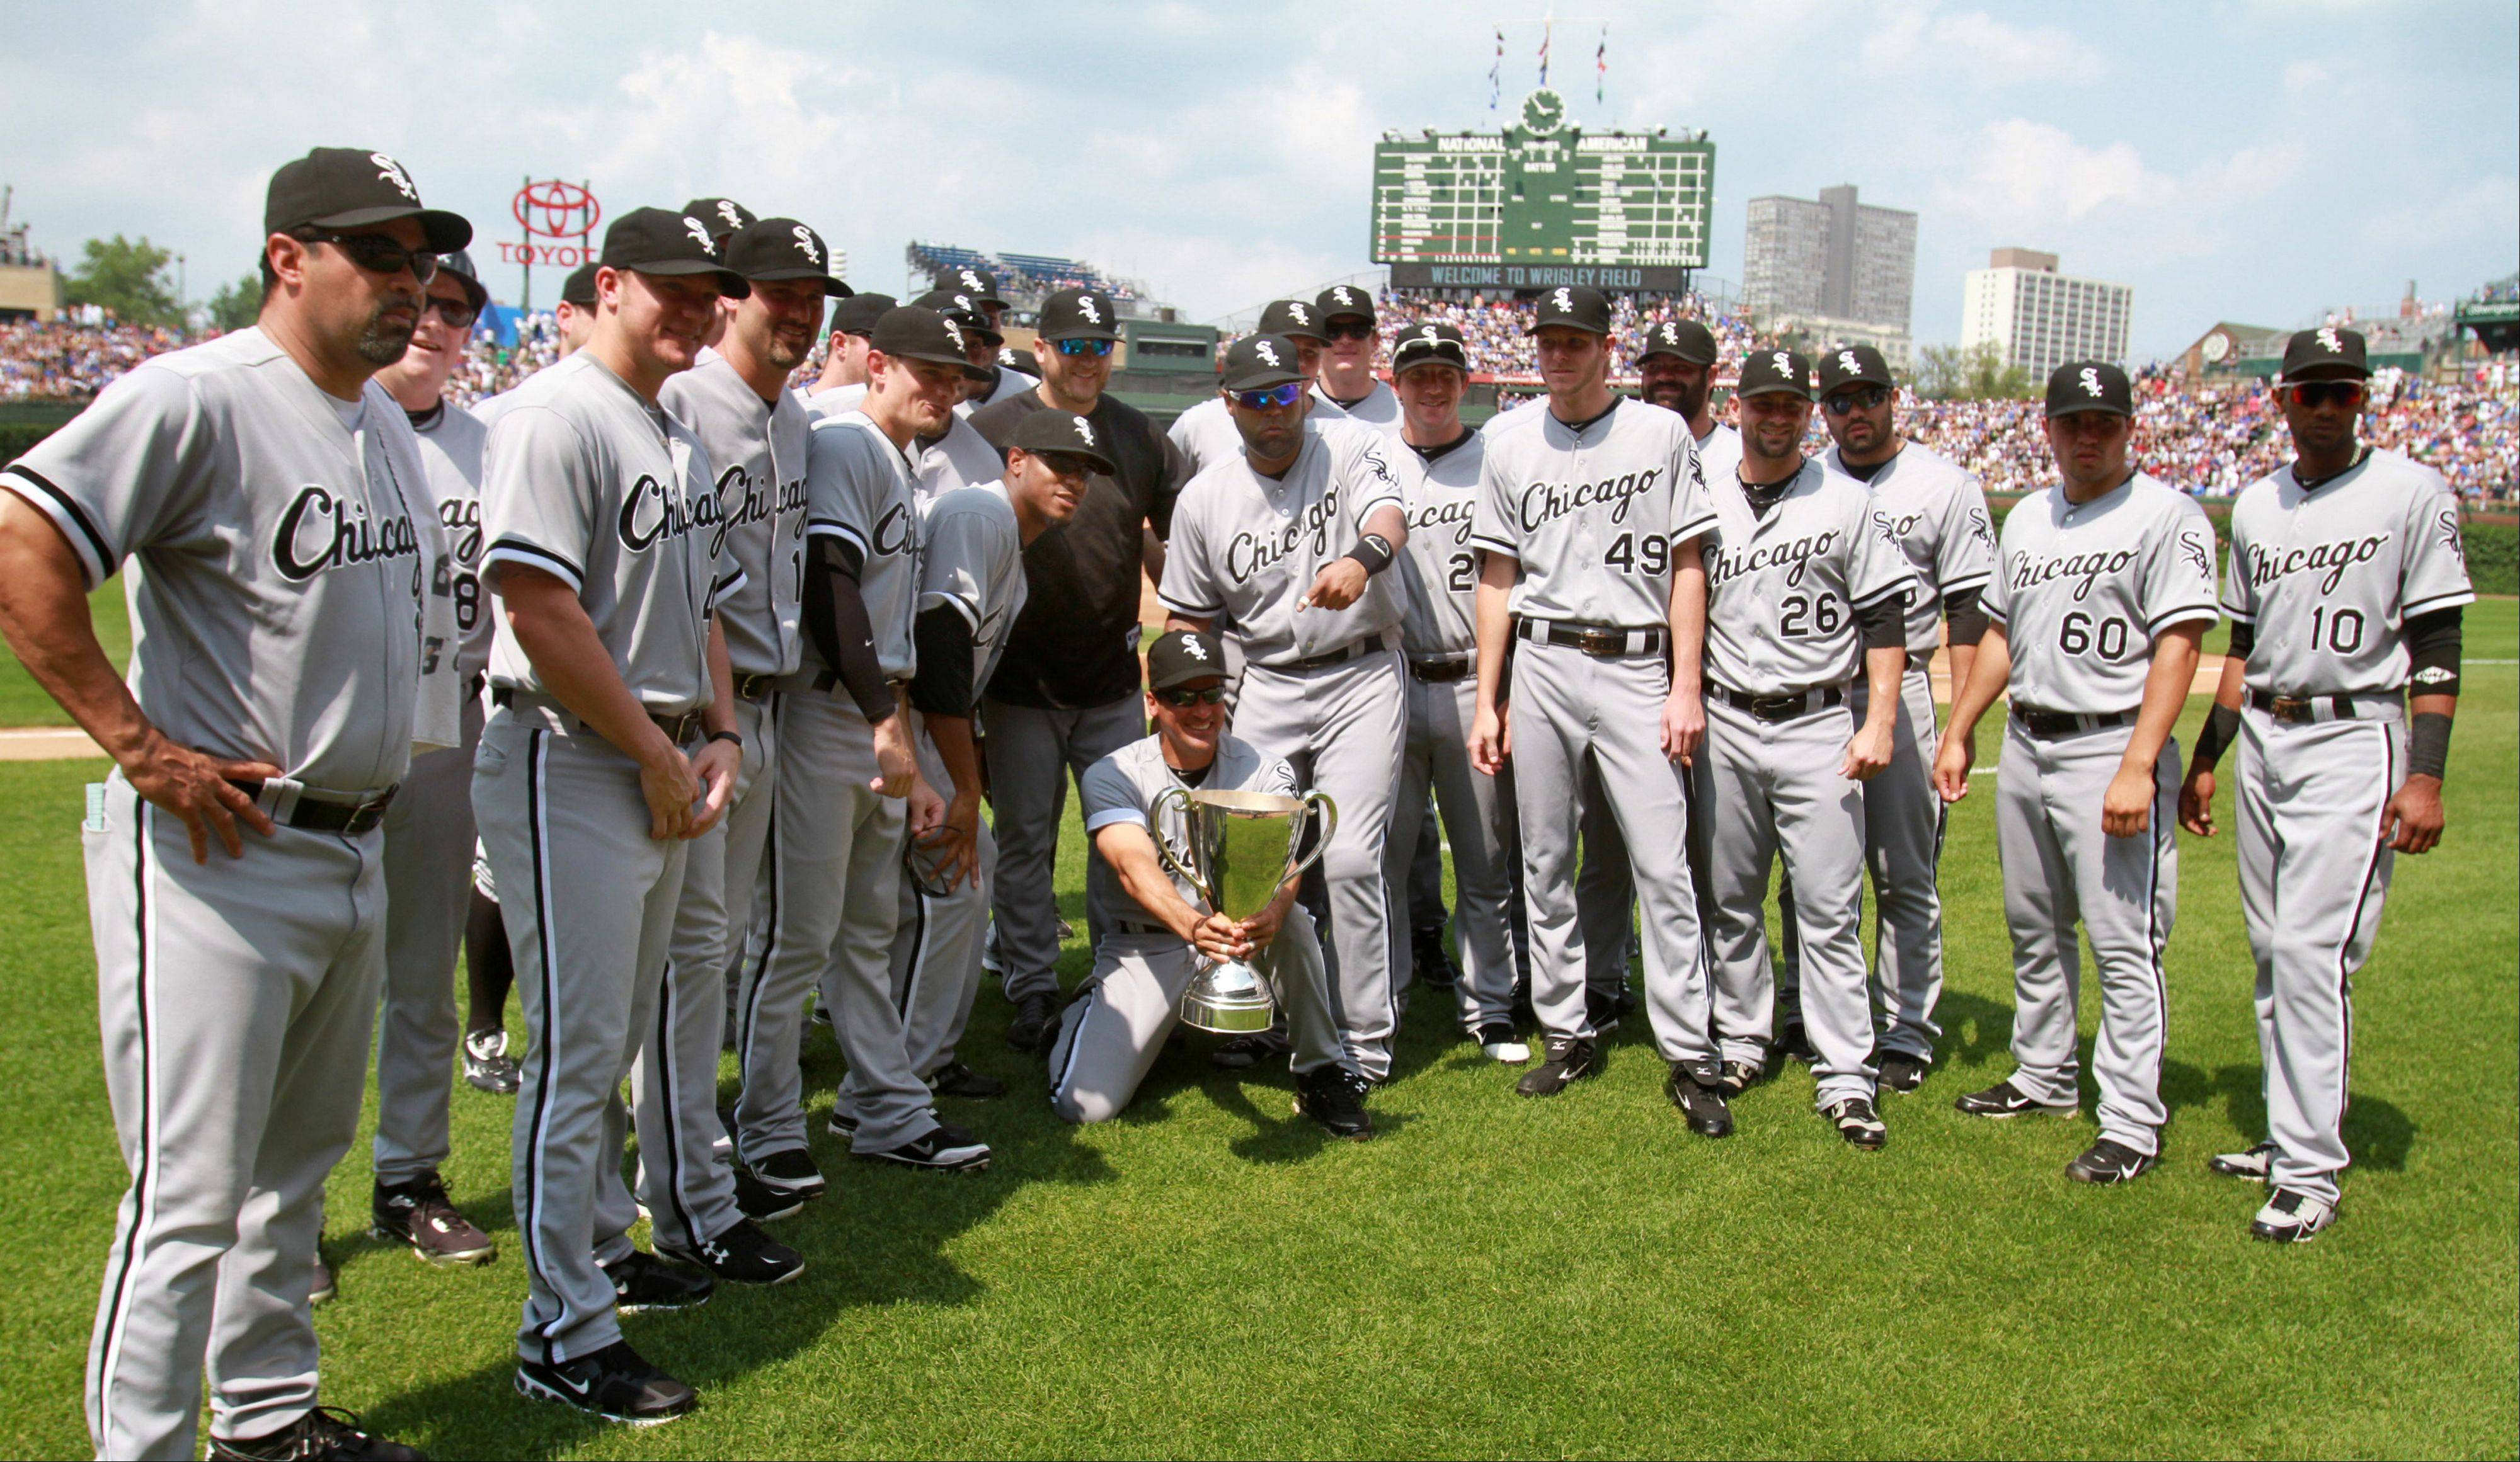 White Sox manager Ozzie Guillen and the team pose a photo with the BP Cup before the game with the Cubs at Wrigley Field on Saturday.